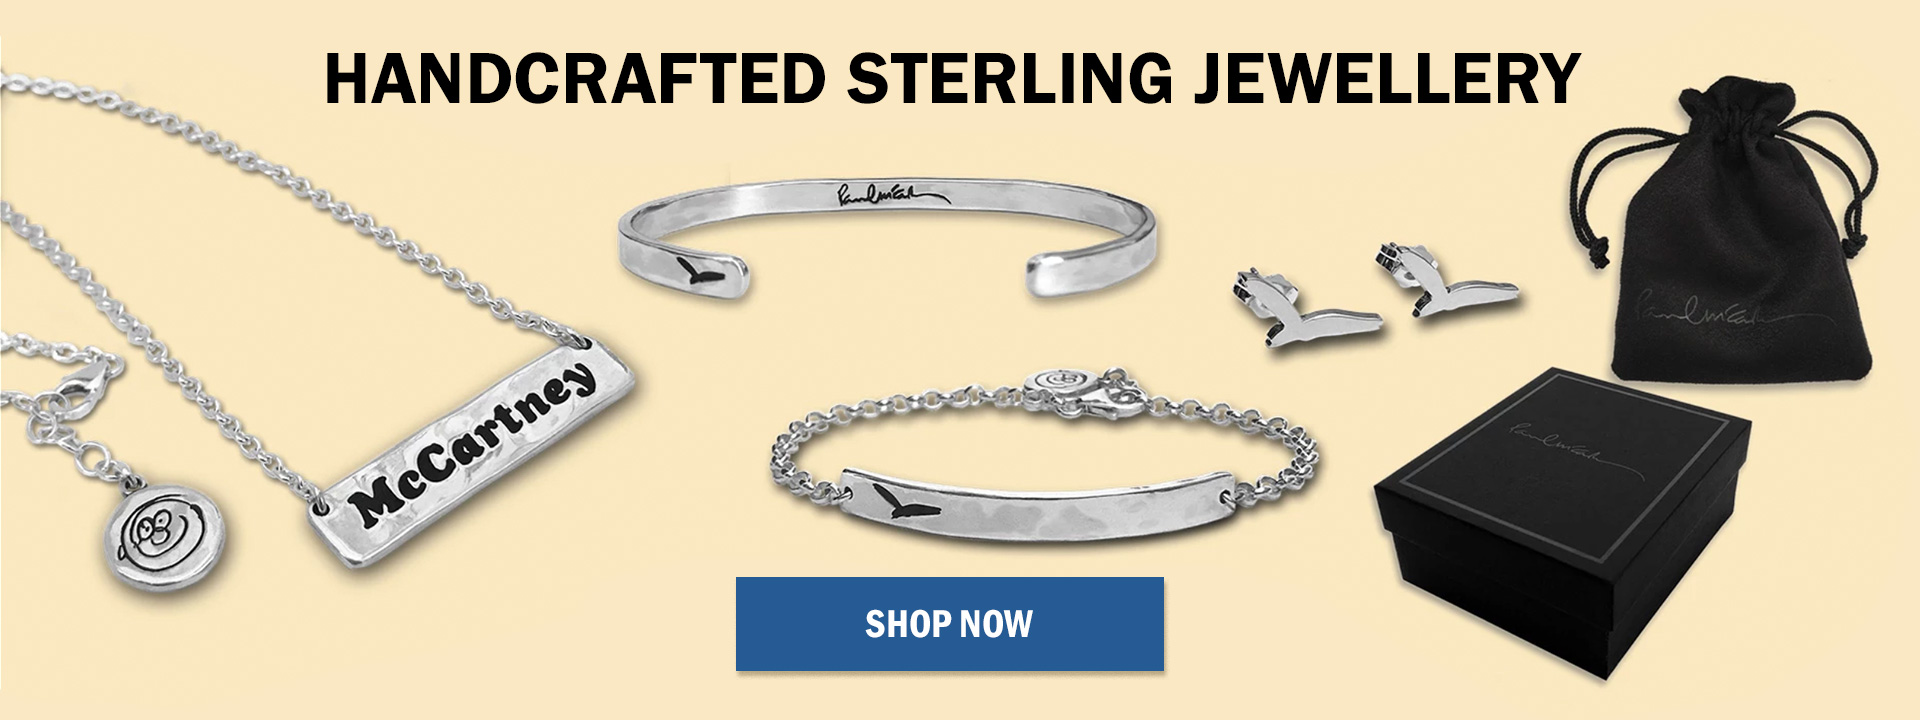 Handcrafted Sterling Jewellery | Click Here to Shop Now!